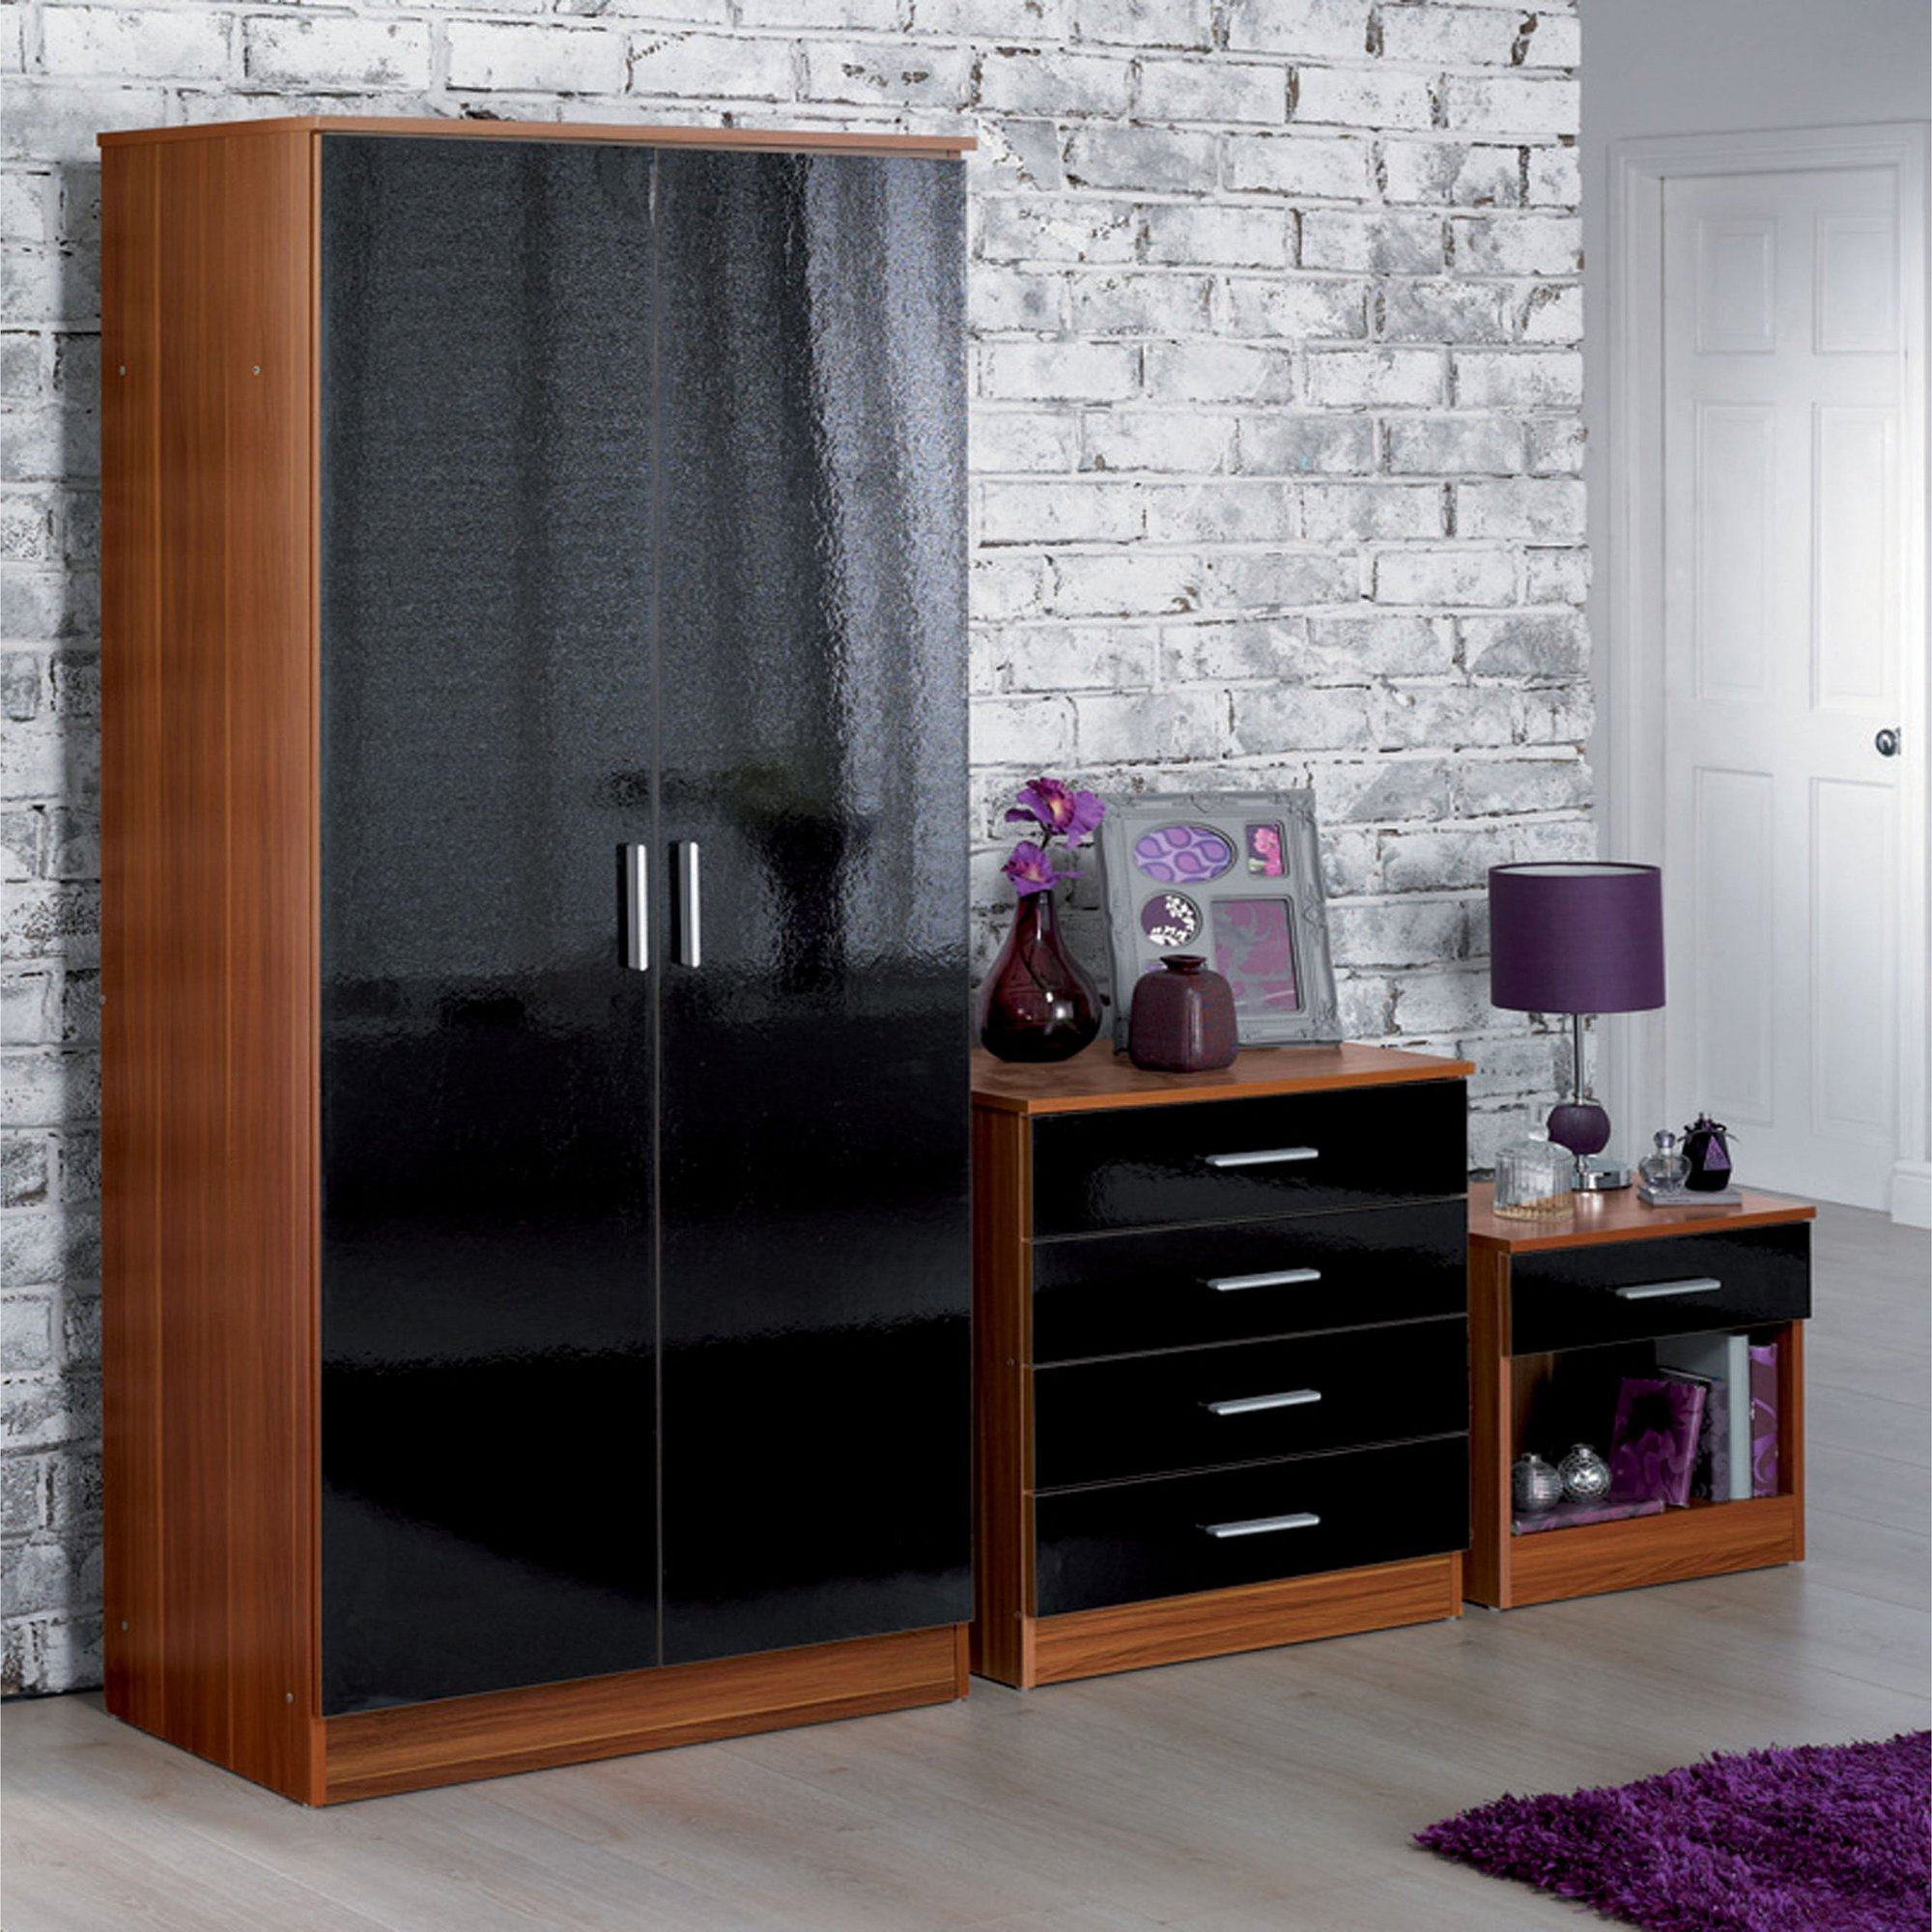 Image of Carleton 3-Piece High Gloss Bedroom Set